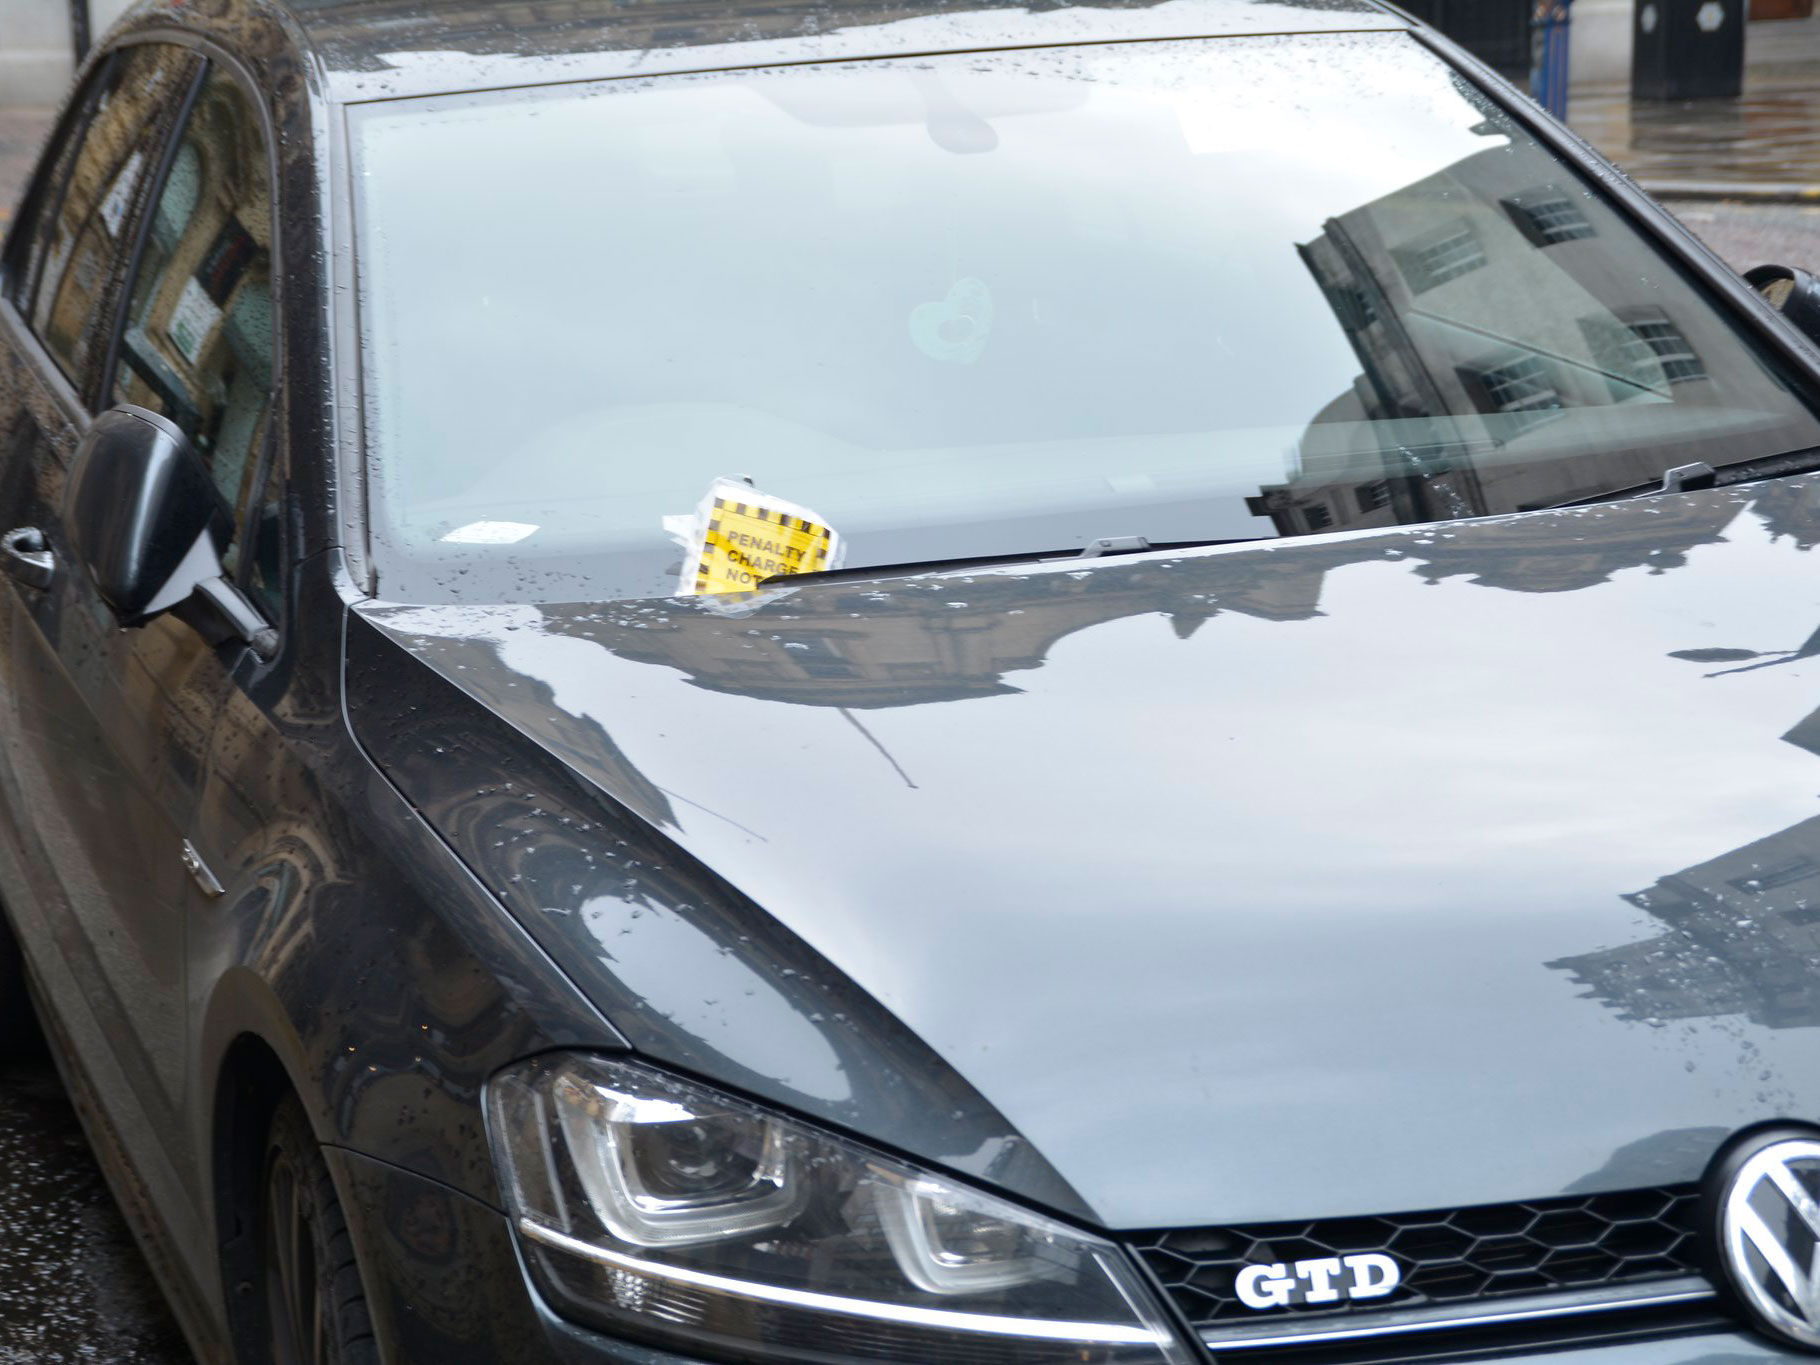 Parking fines to come back into force in Harrogate district